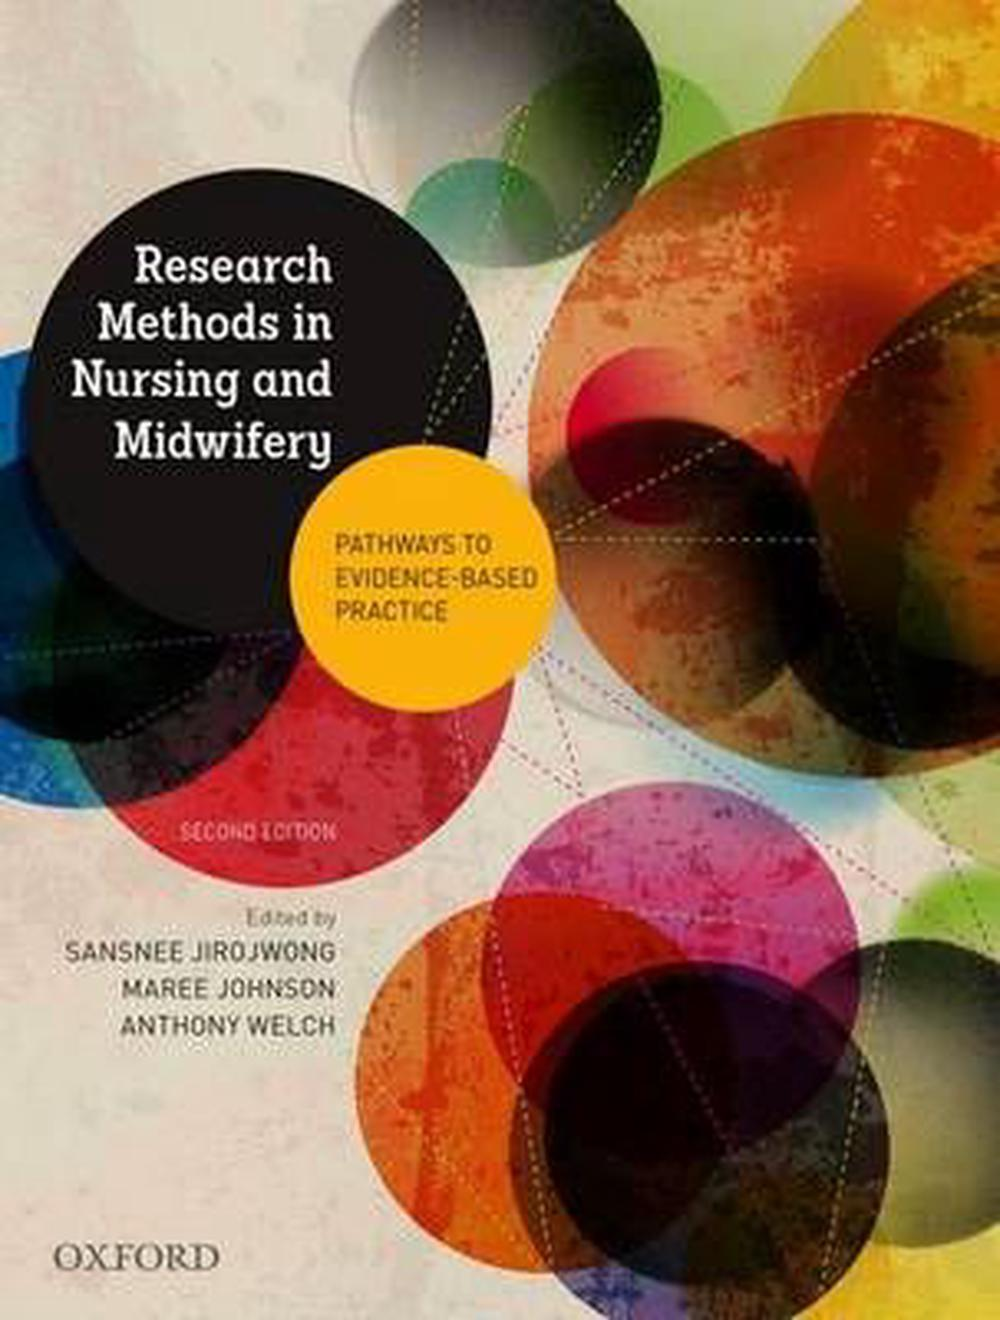 Research Methods in Nursing and Midwifery: Pathways to Evidence-based: Practice by Sansnee Jirojwong, Maree Johnson, Anthony Welch, ISBN: 9780195528510